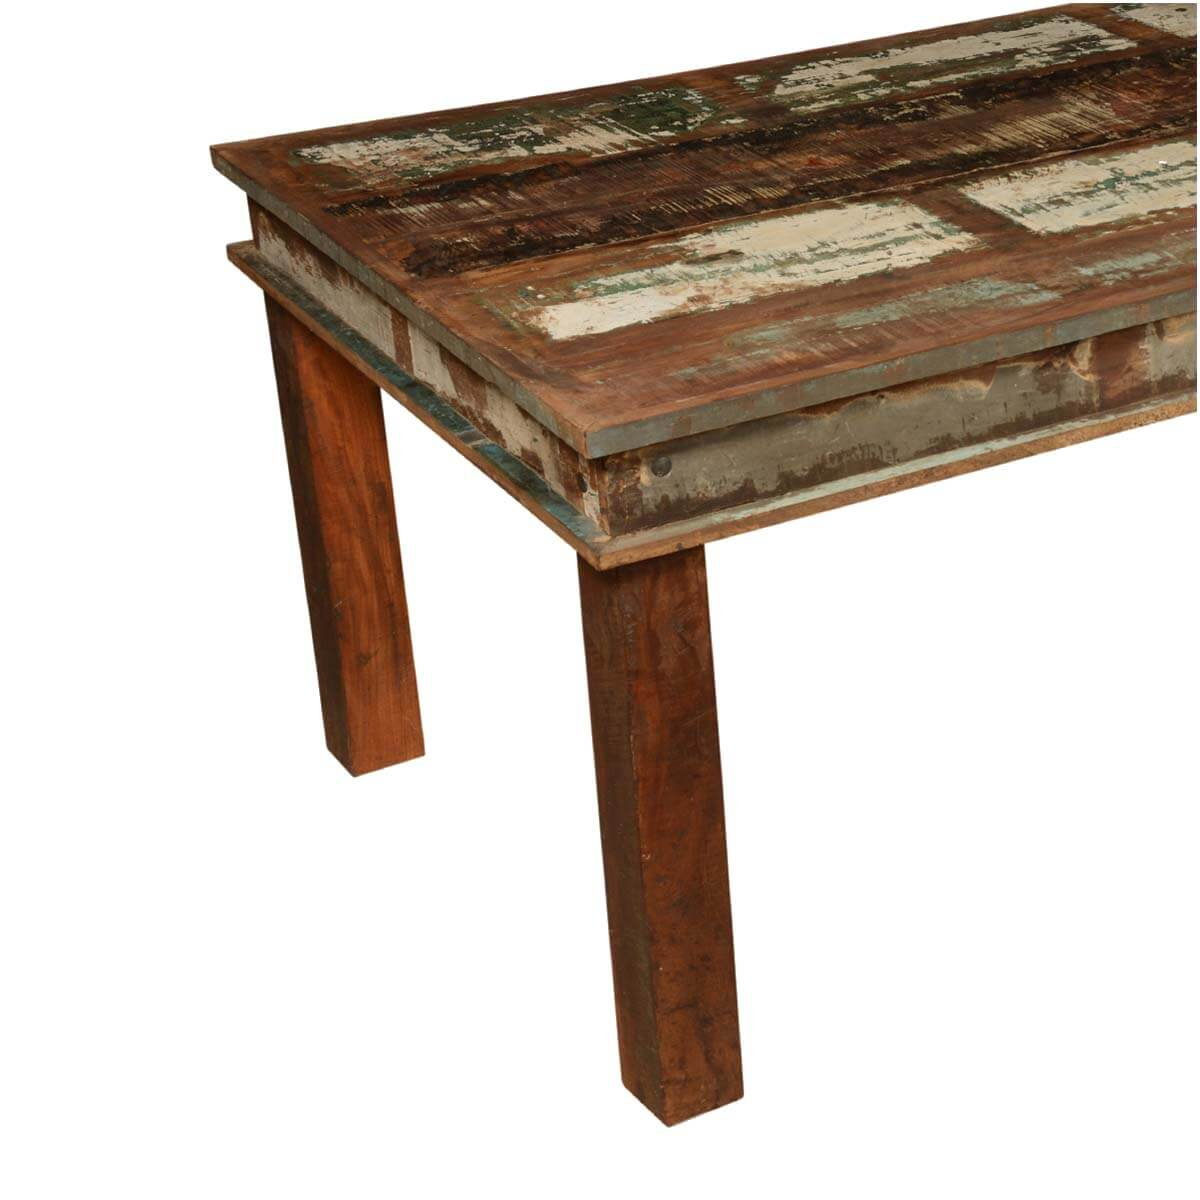 Appalachian distressed reclaimed wood 96 rustic dining table for Dinner table wood